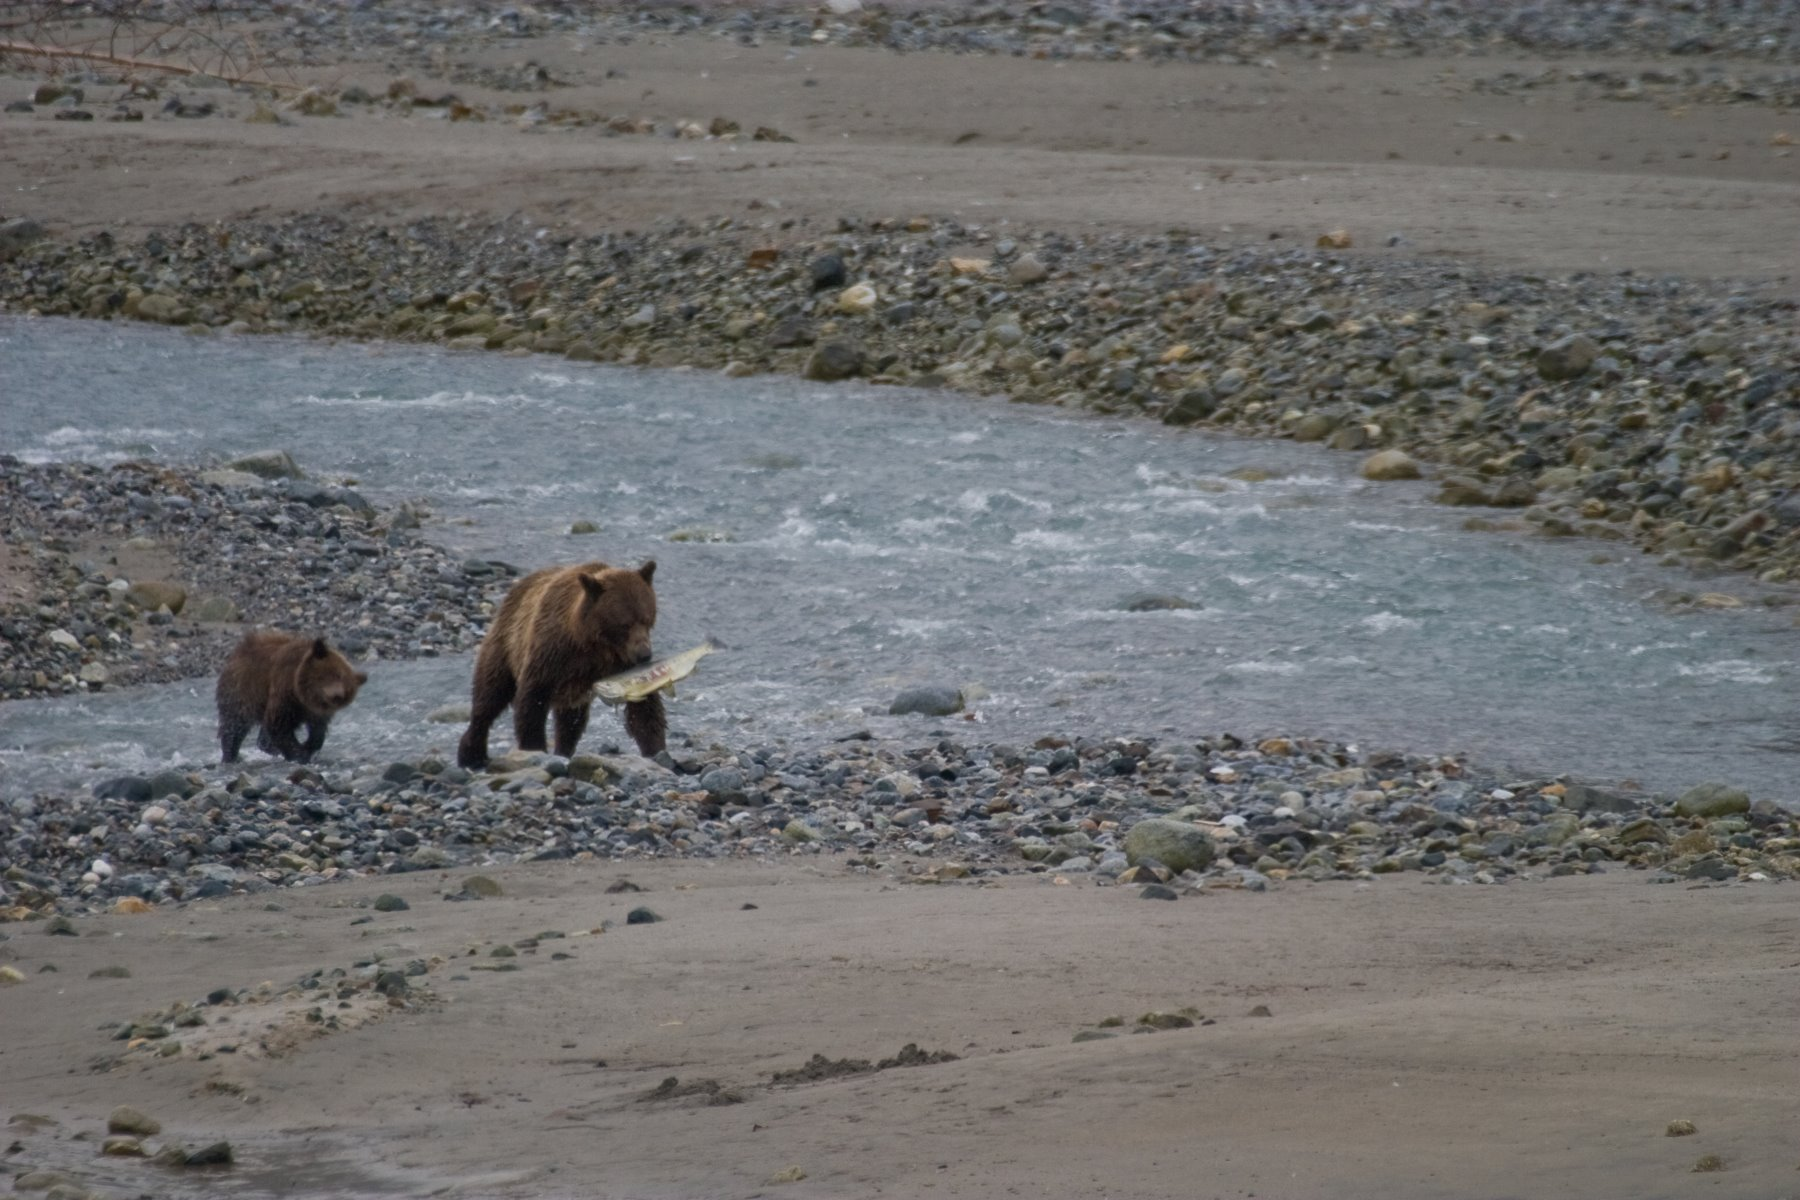 Brown bear and her cub having some success at fishing.